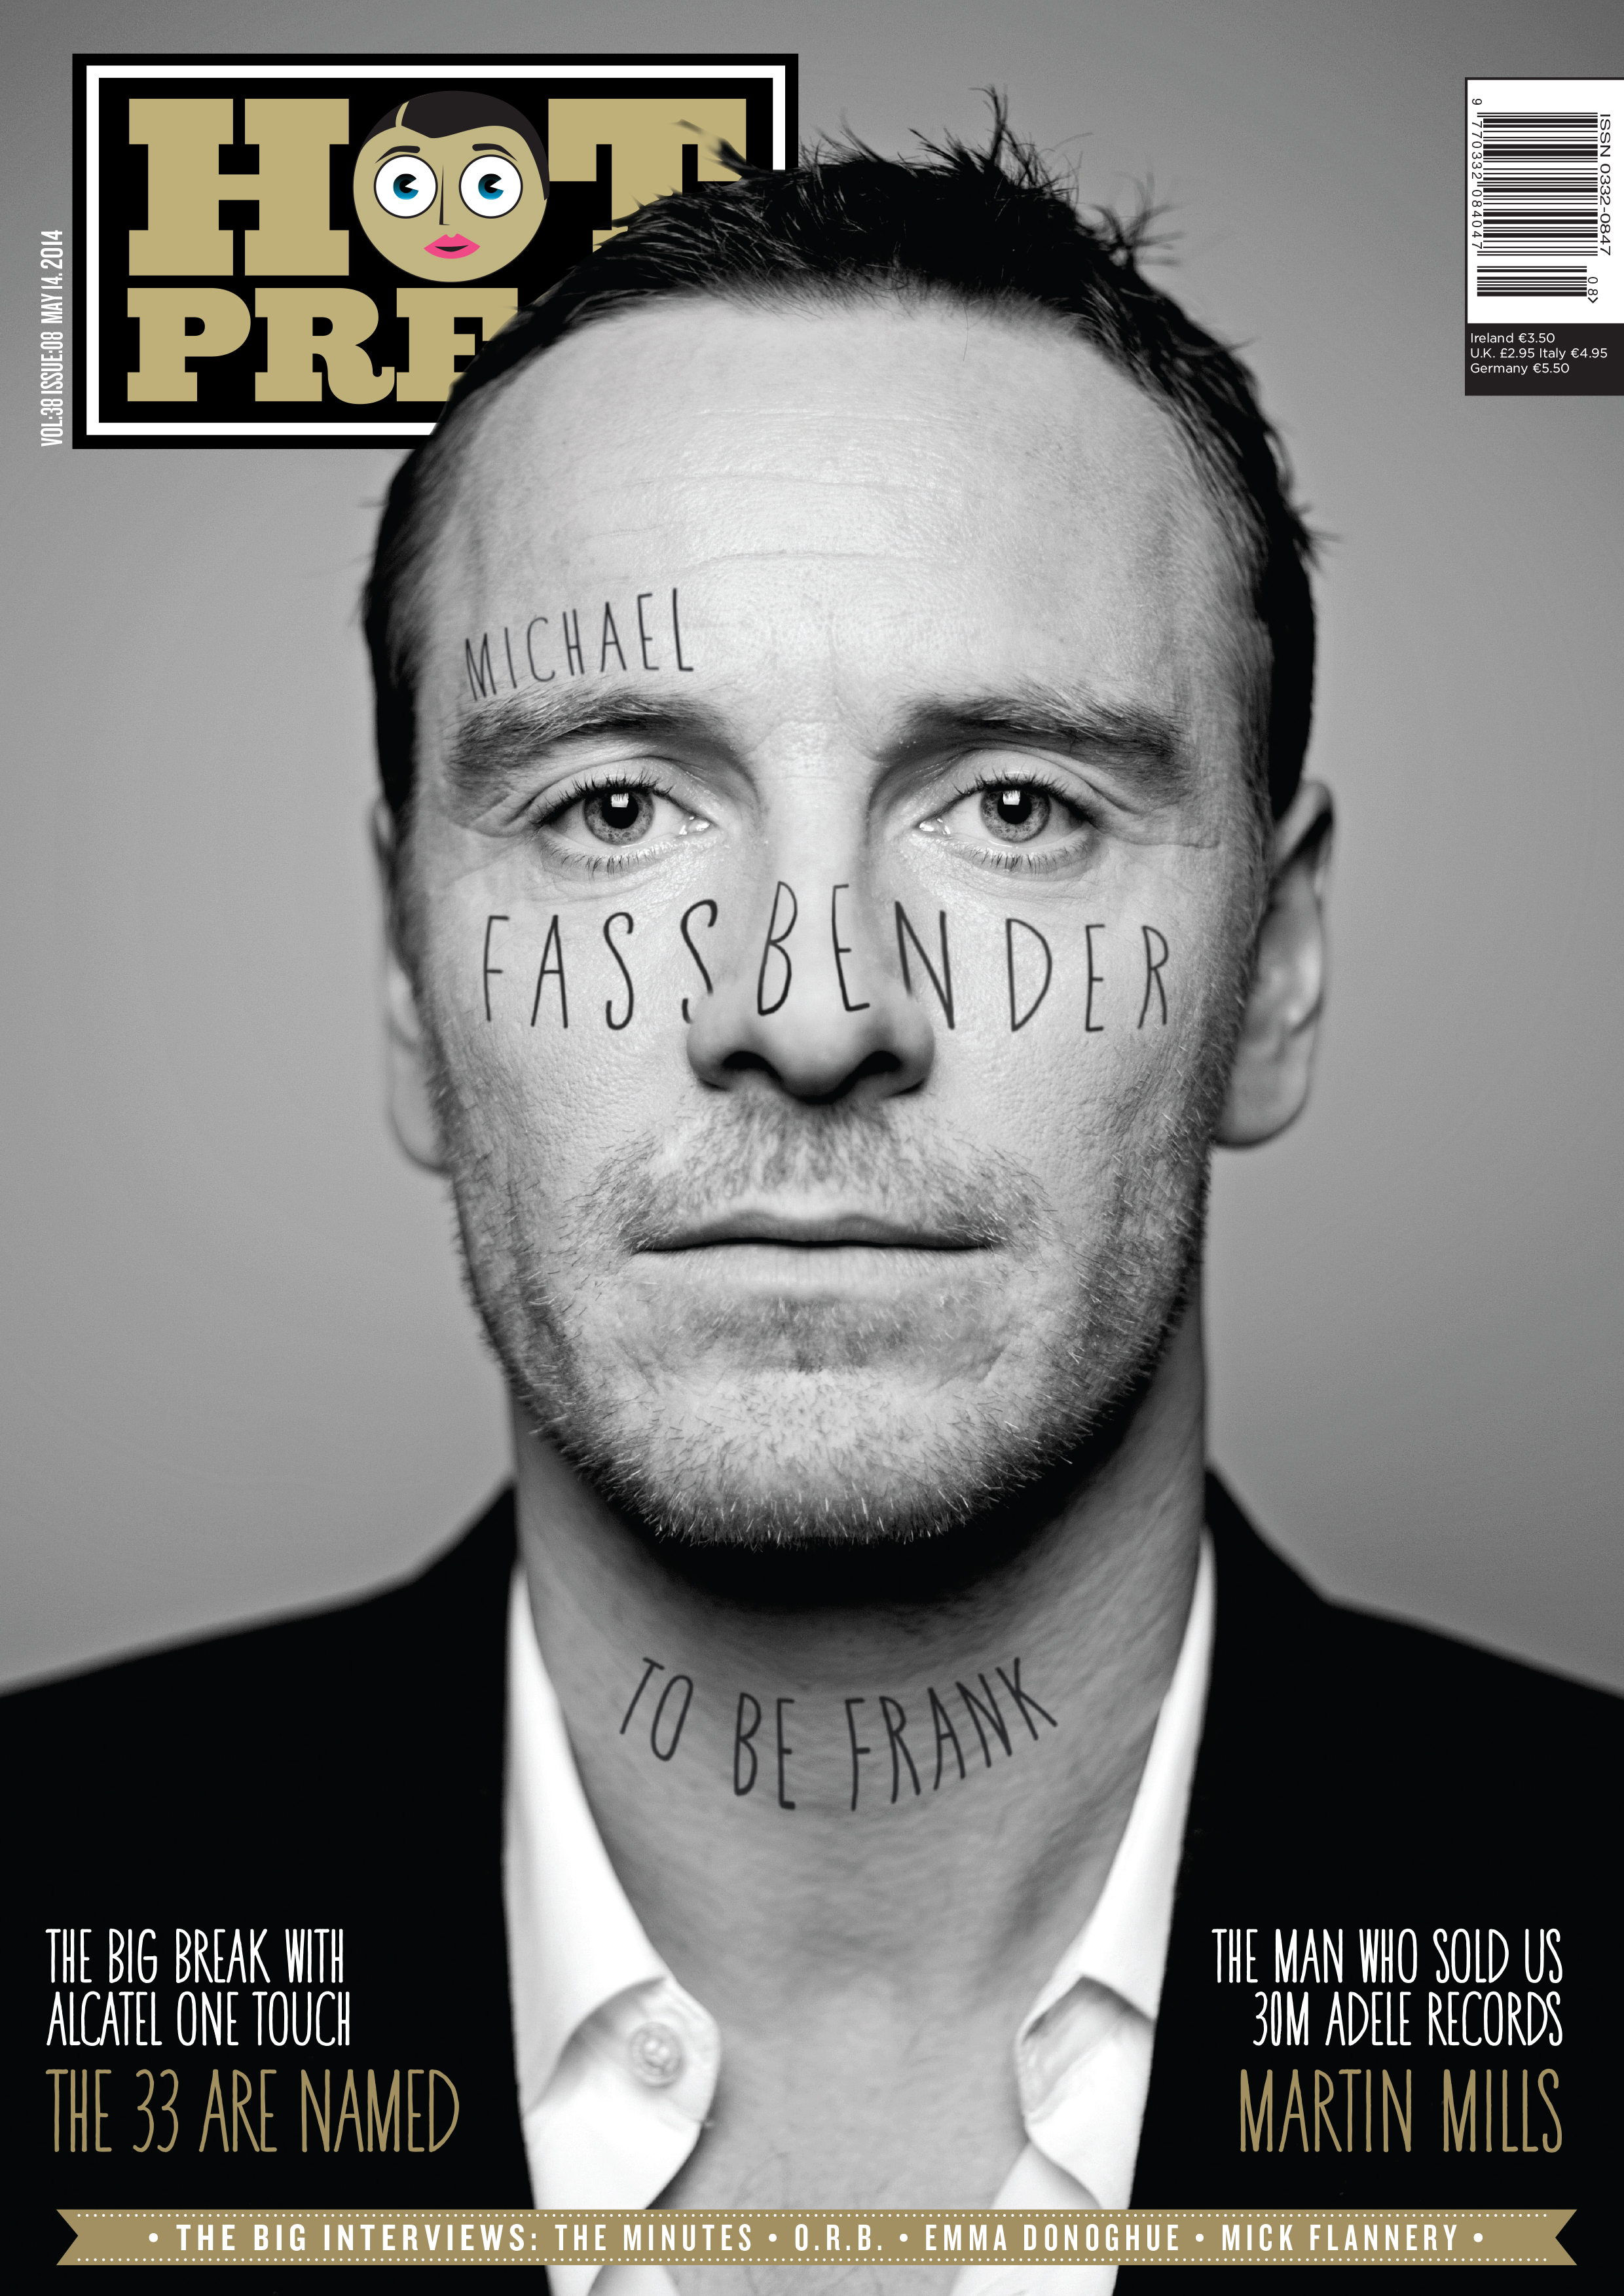 Michael Fassbender  , photographed exclusively for the cover of   Hot Press   Magazine.